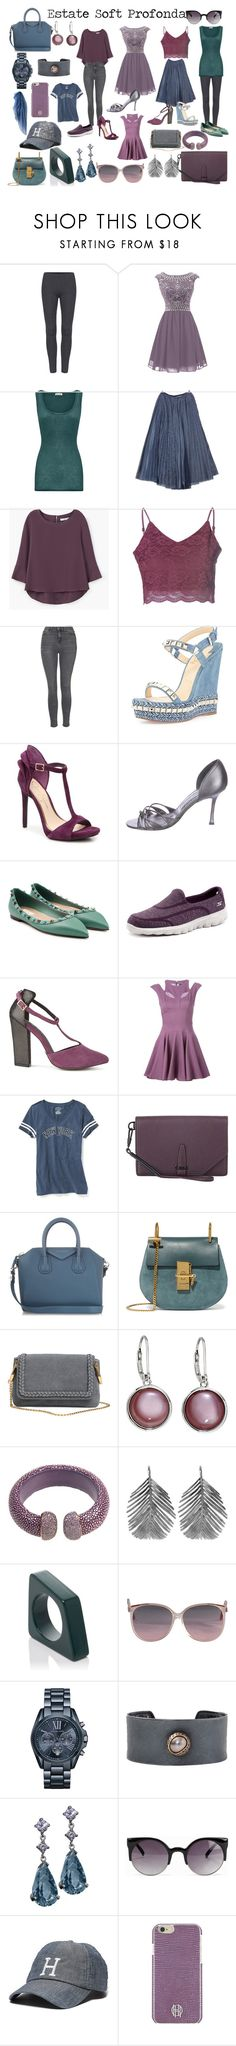 """Estate Soft Profonda in primavera"" by laralabiche ❤ liked on Polyvore featuring American Vintage, Chanel, MANGO, Glamorous, Topshop, Christian Louboutin, Manolo Blahnik, Valentino, Skechers and Ravel"